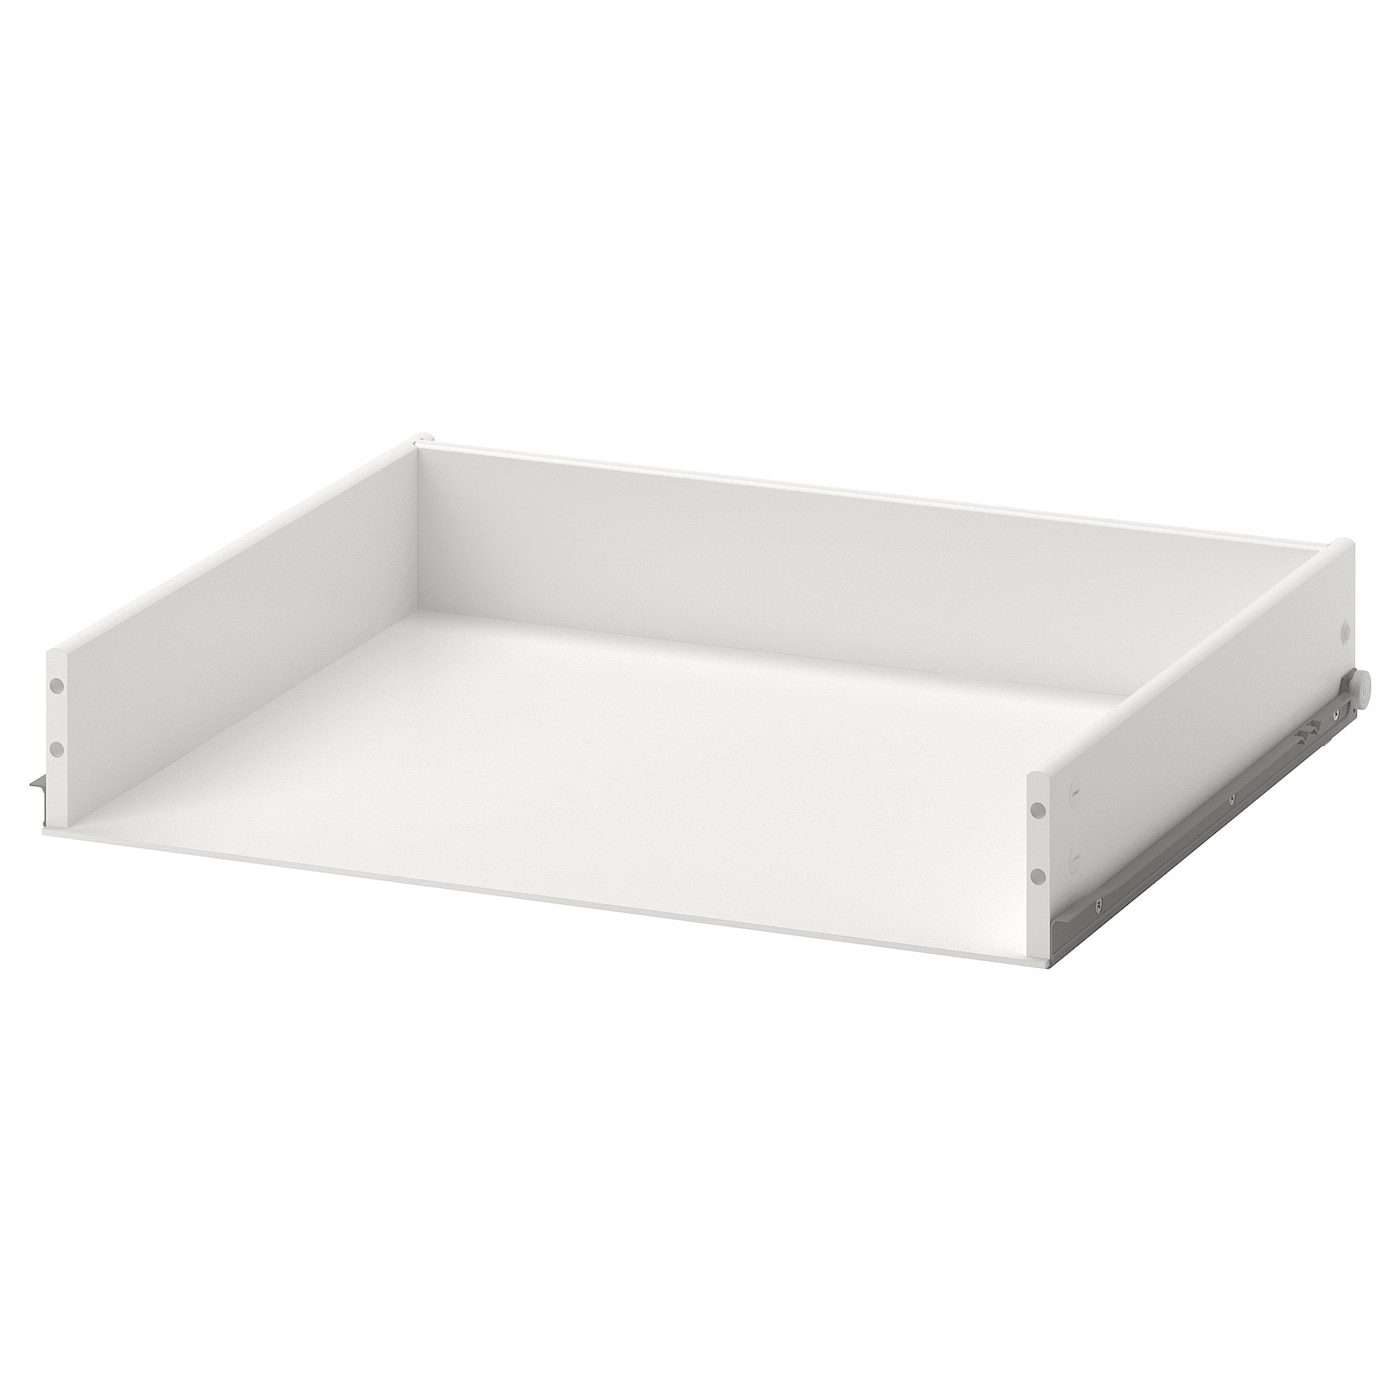 IKEA STUVA GRUNDLIG drawer without front